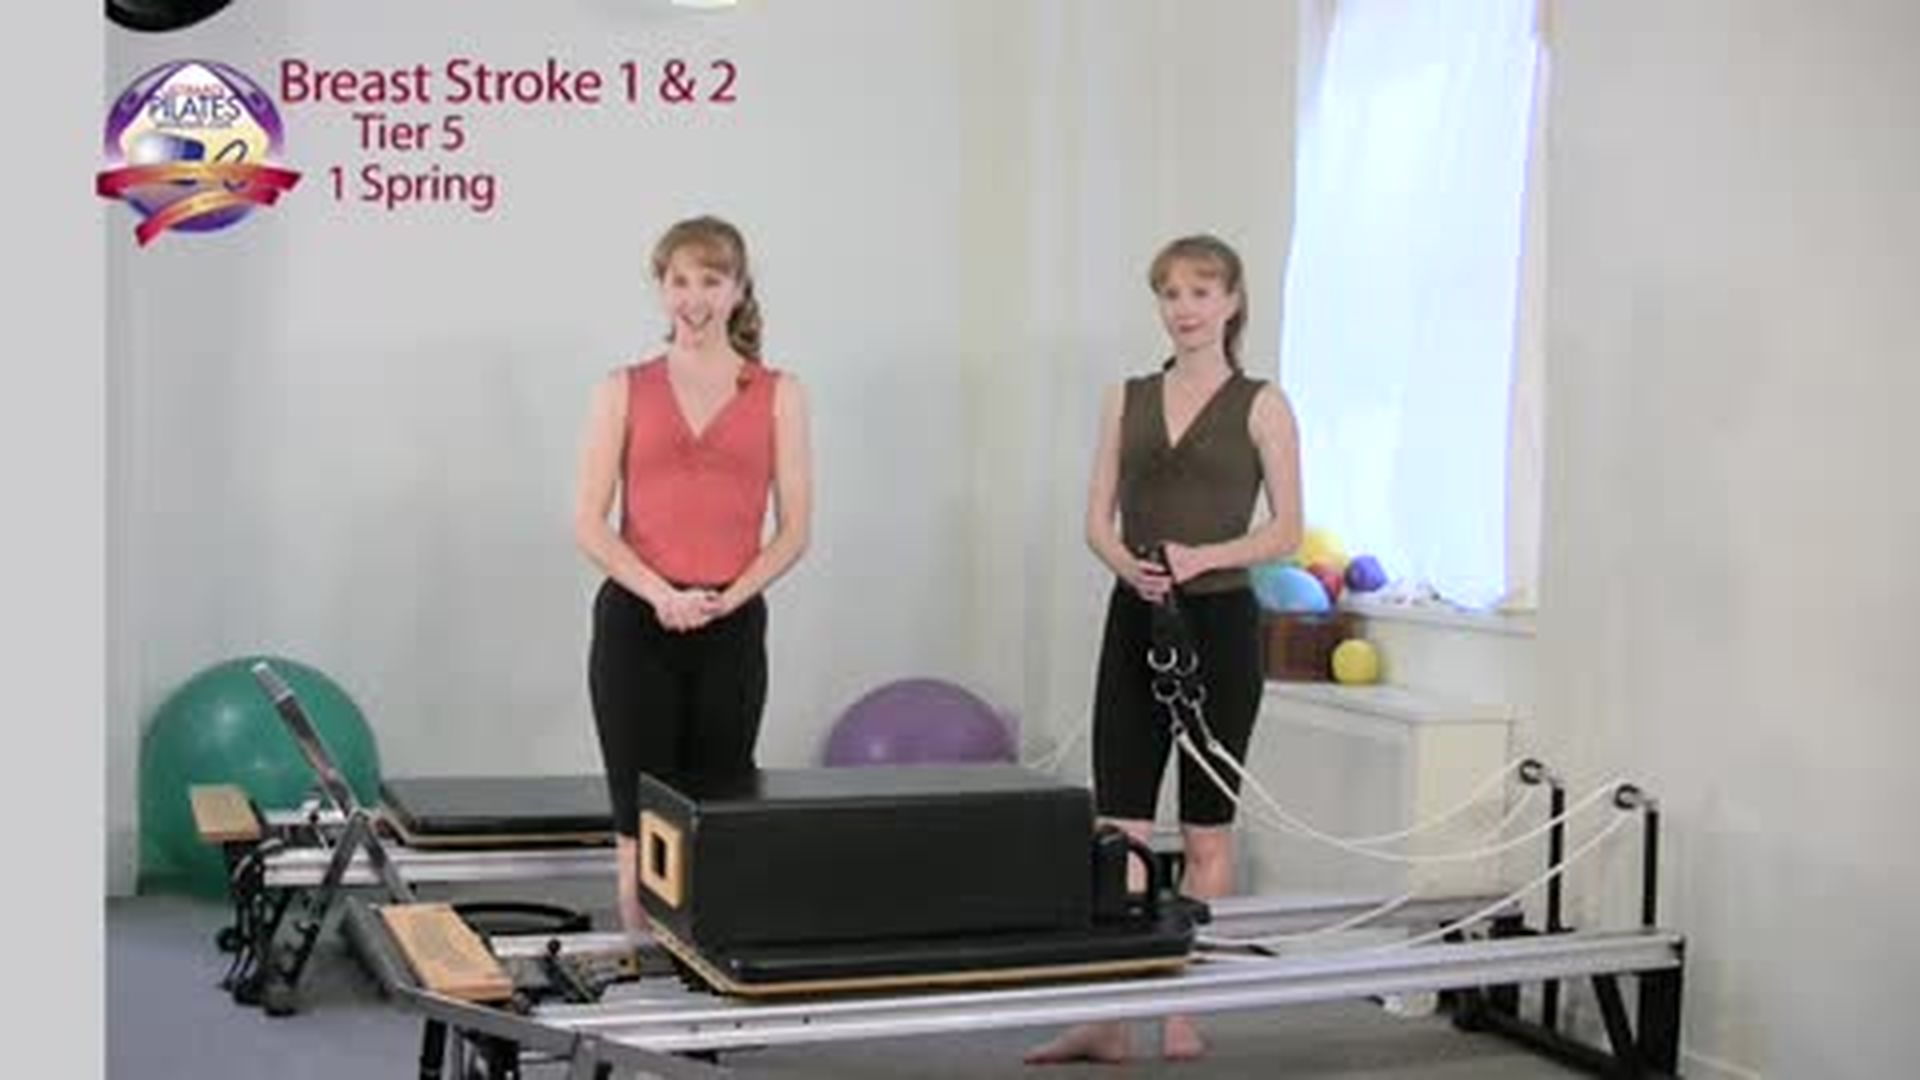 Breast Stroke 1 and 2